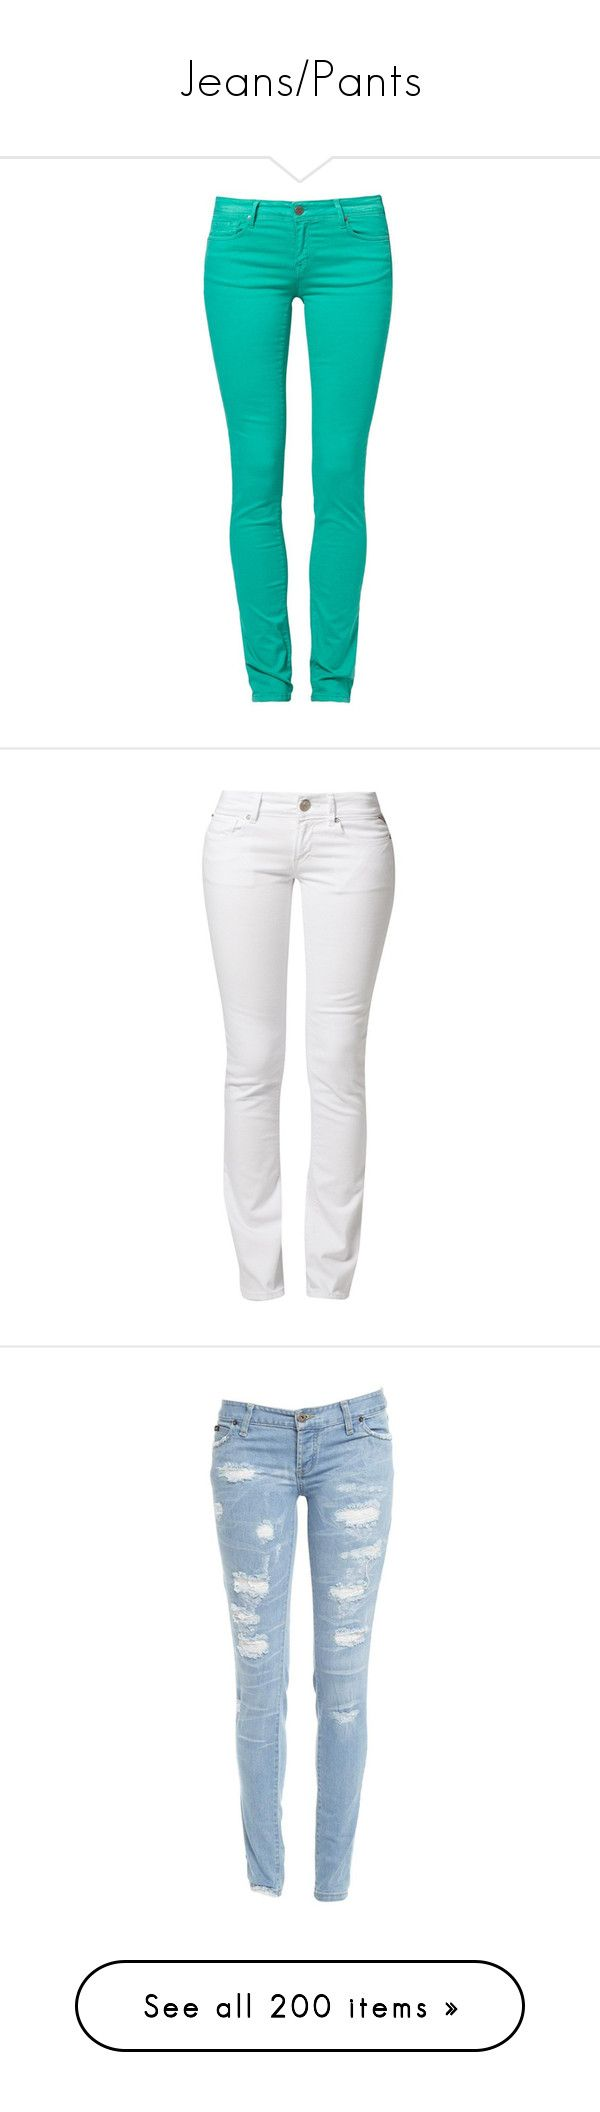 """""""Jeans/Pants"""" by blaizeg ❤ liked on Polyvore featuring jeans, pants, bottoms, housut, green, women's trousers, green jeans, slim jeans, cimarron jeans and slim leg jeans"""